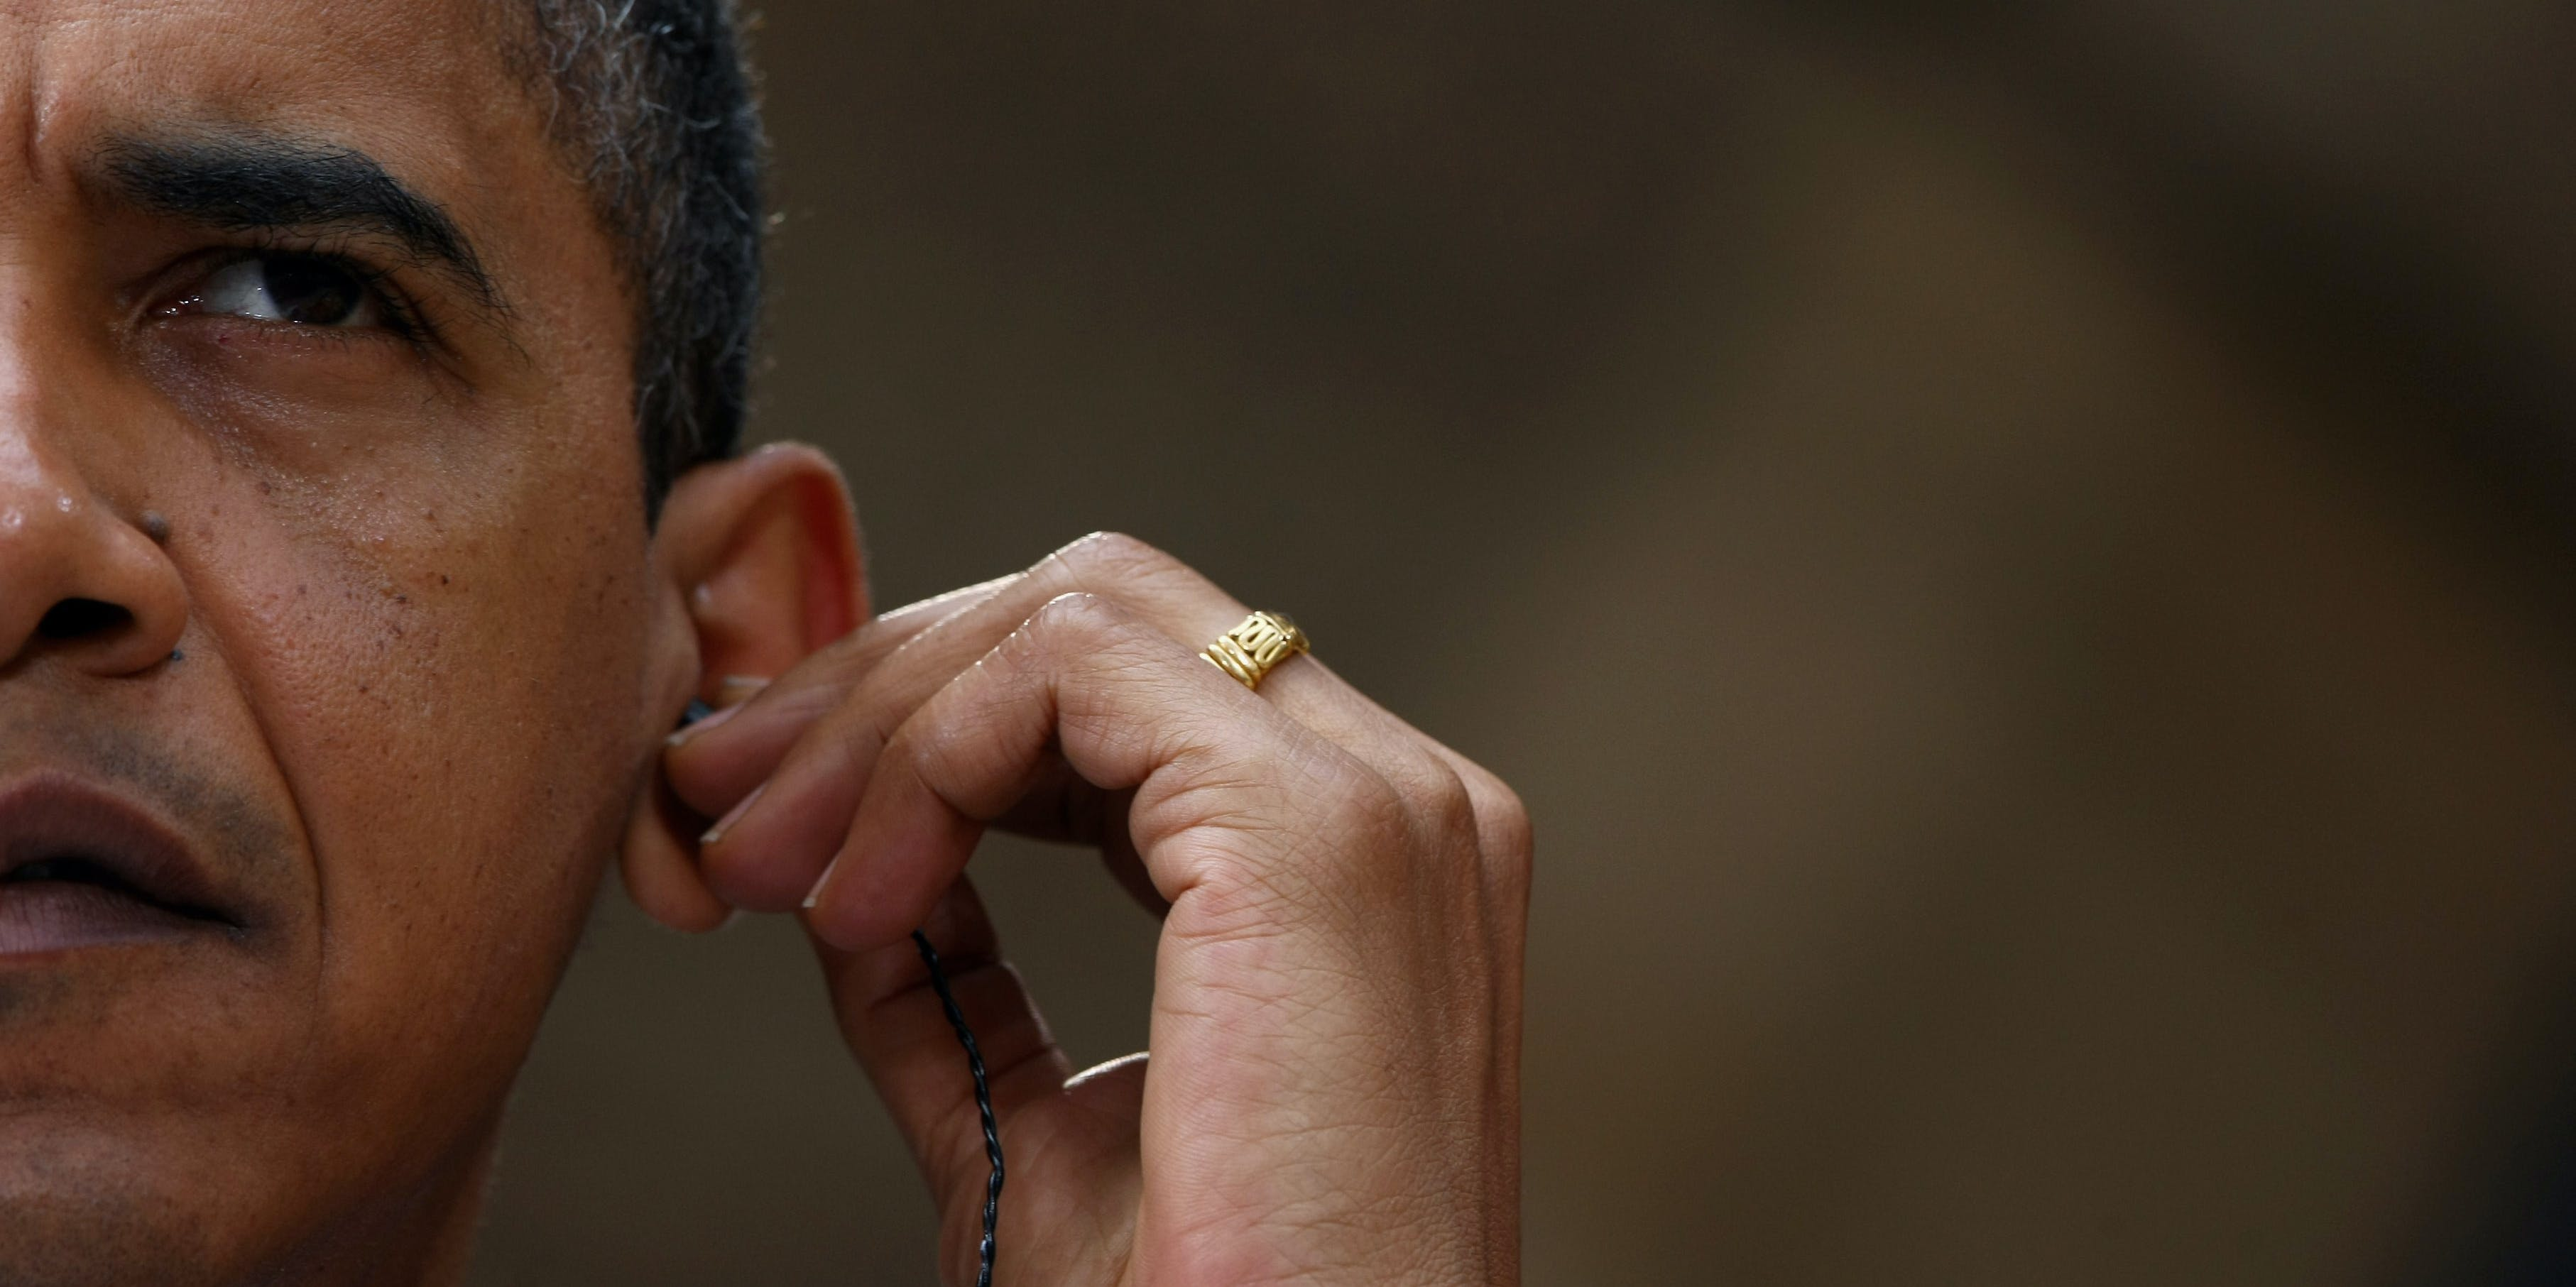 DRESDEN, GERMANY - JUNE 05:  U.S. President  Barack Obama sets his ear phone during a news conference on June 5, 2009 in Dresden, Germany. Obama will visit  Buchenwald, a former Nazi concentration camp, later today.  (Photo by Miguel Villagran/Getty Images)